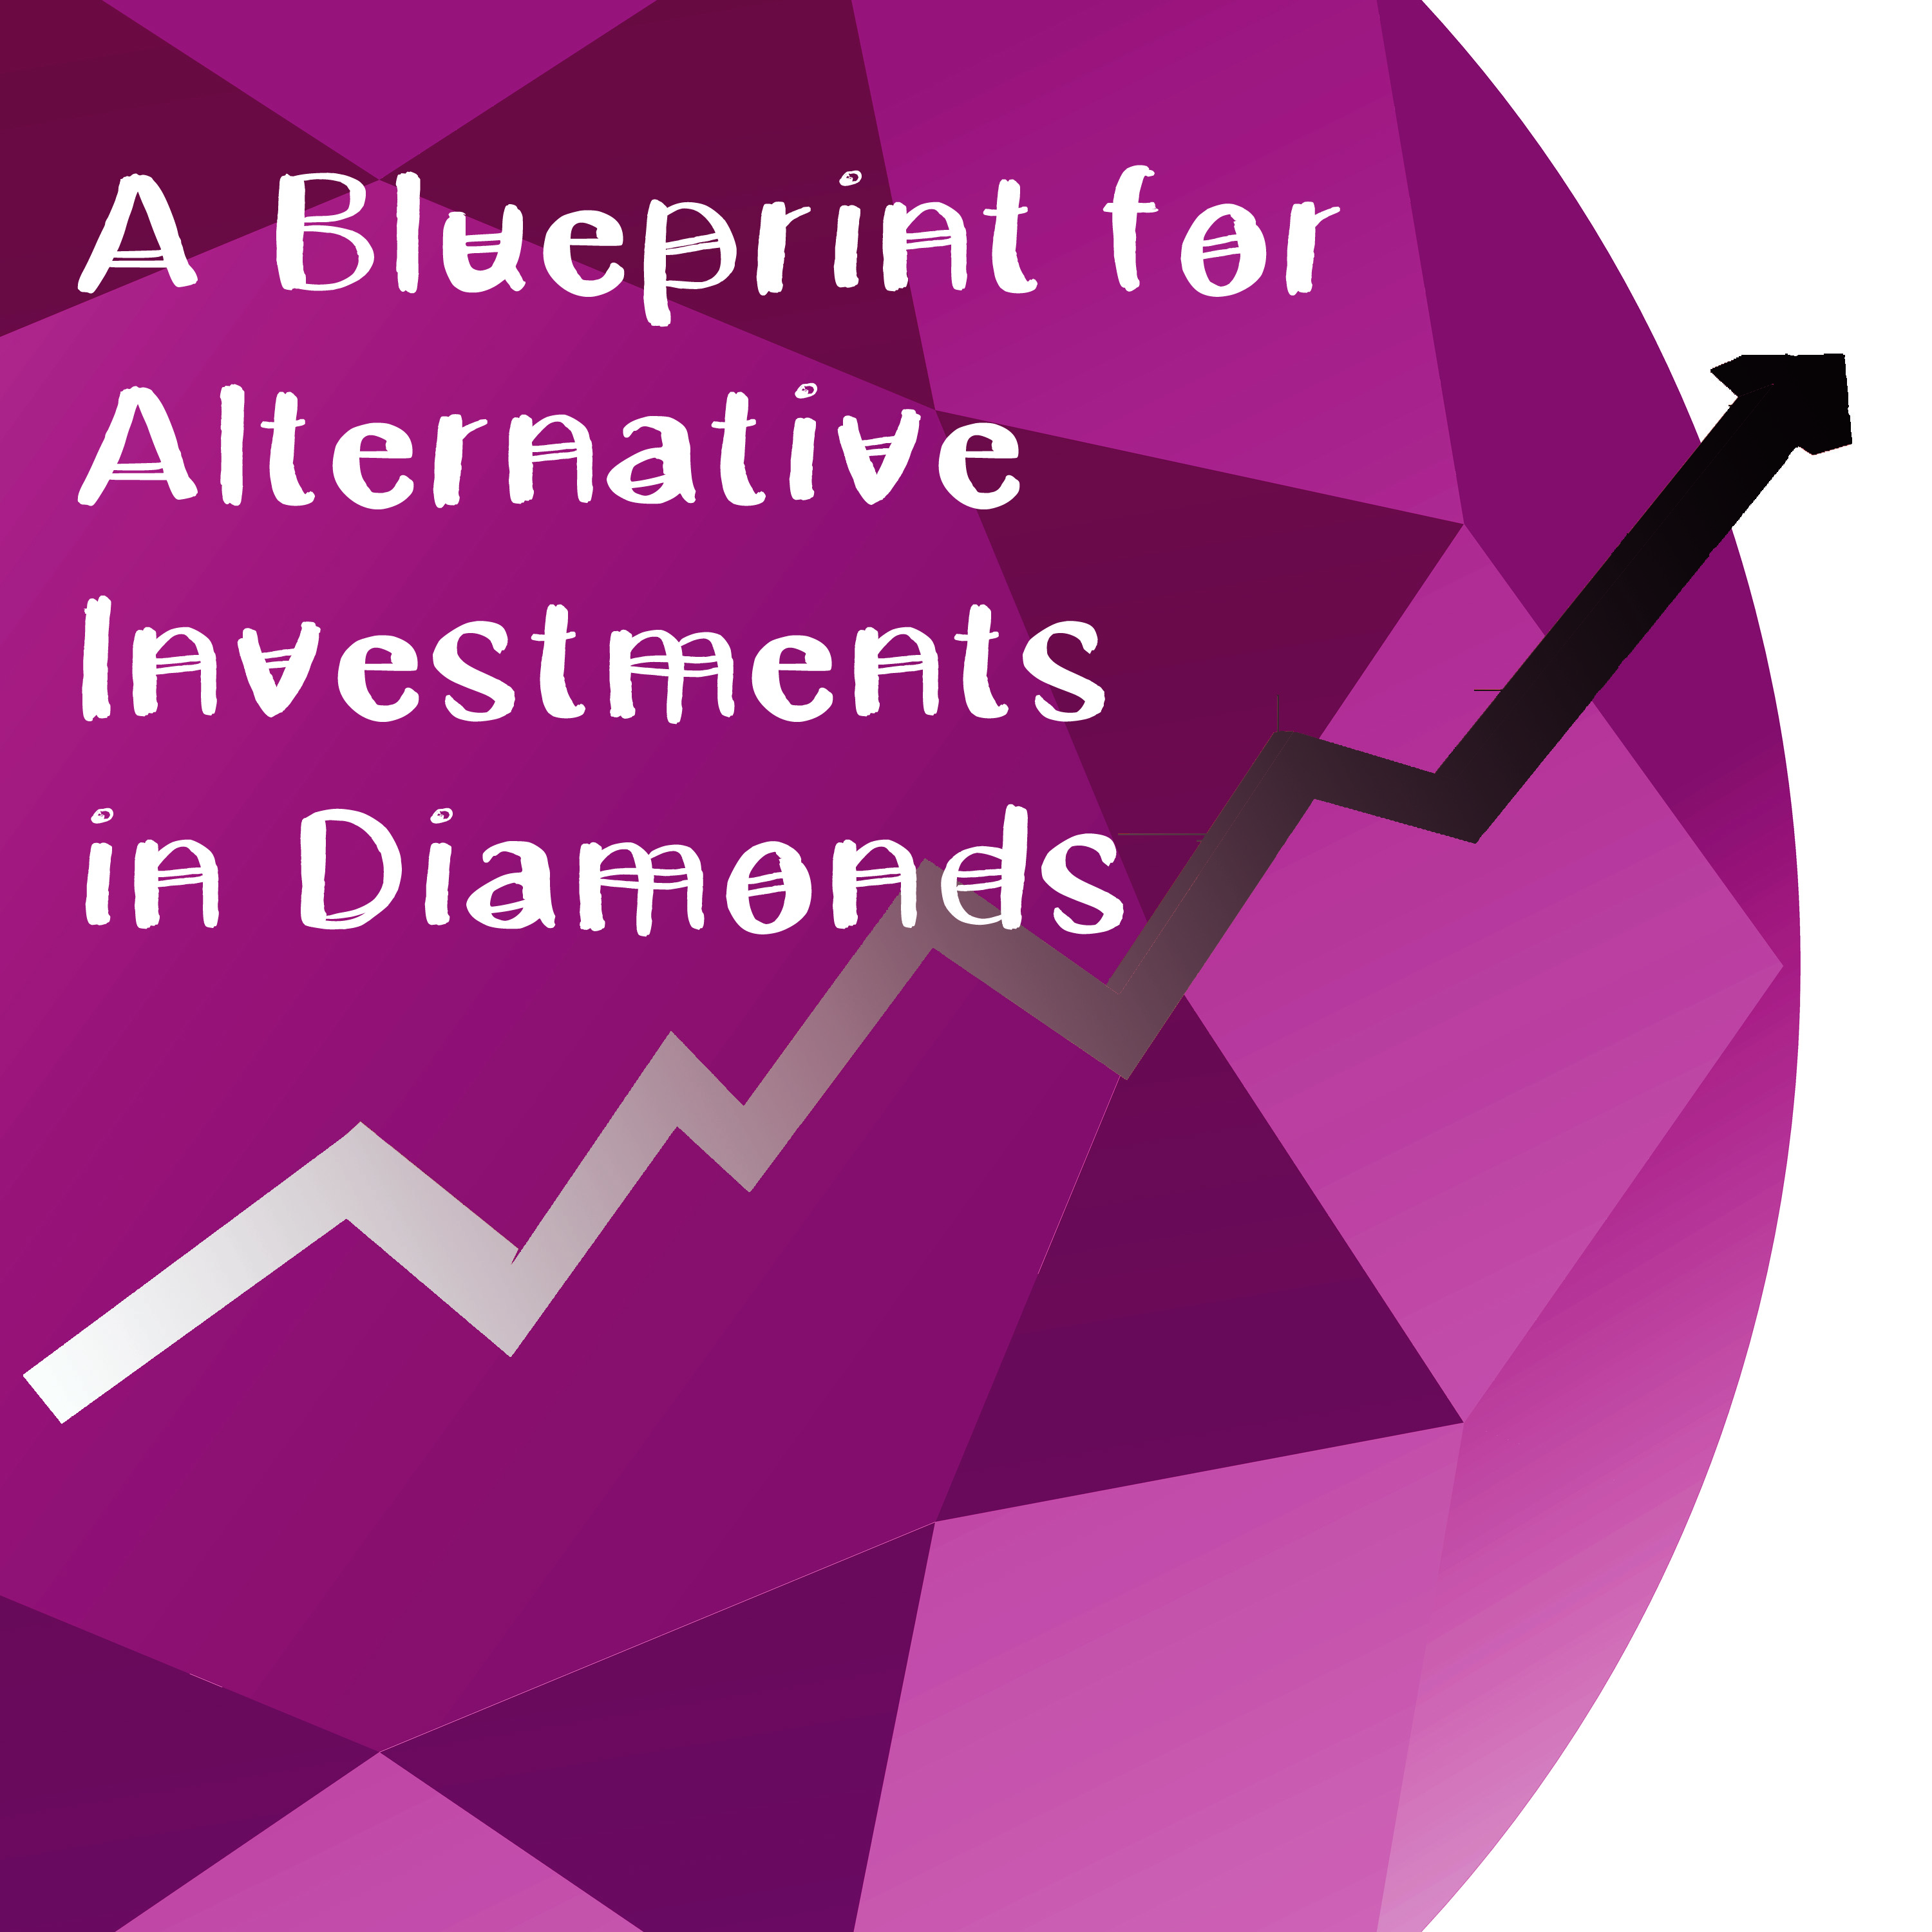 blueprint_alternative_investment_diamonds.jpg